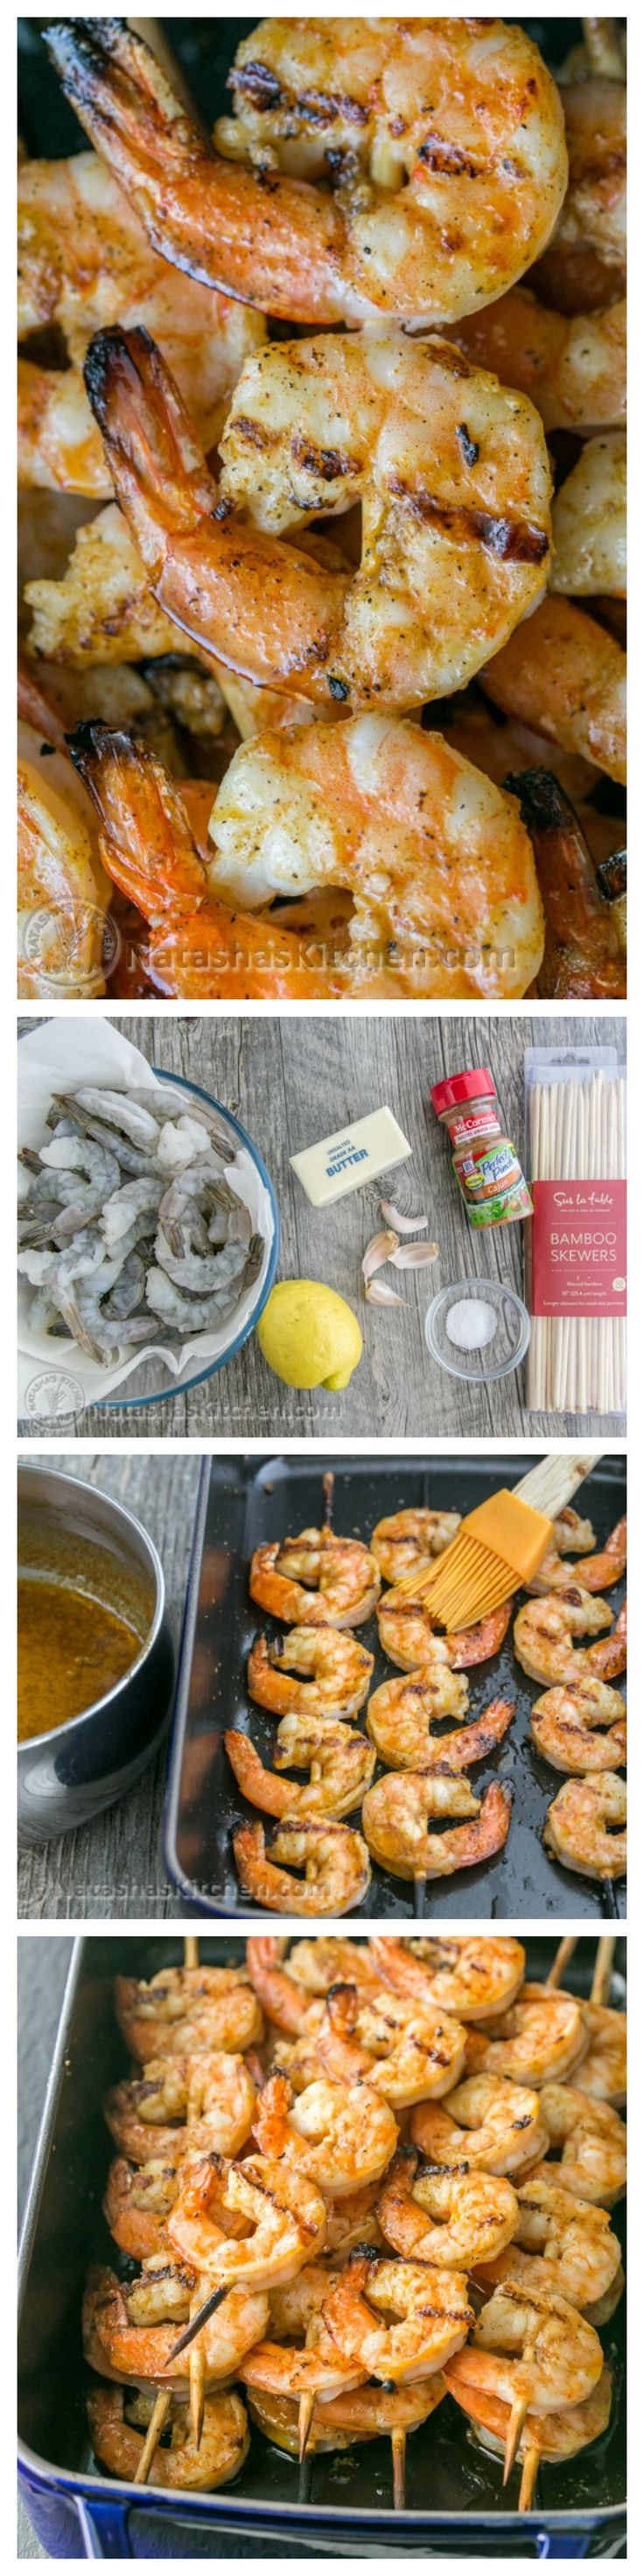 (Irresistibly delicious) Grilled Garlic Cajun Shrimp Skewers | NatashasKitchen.com